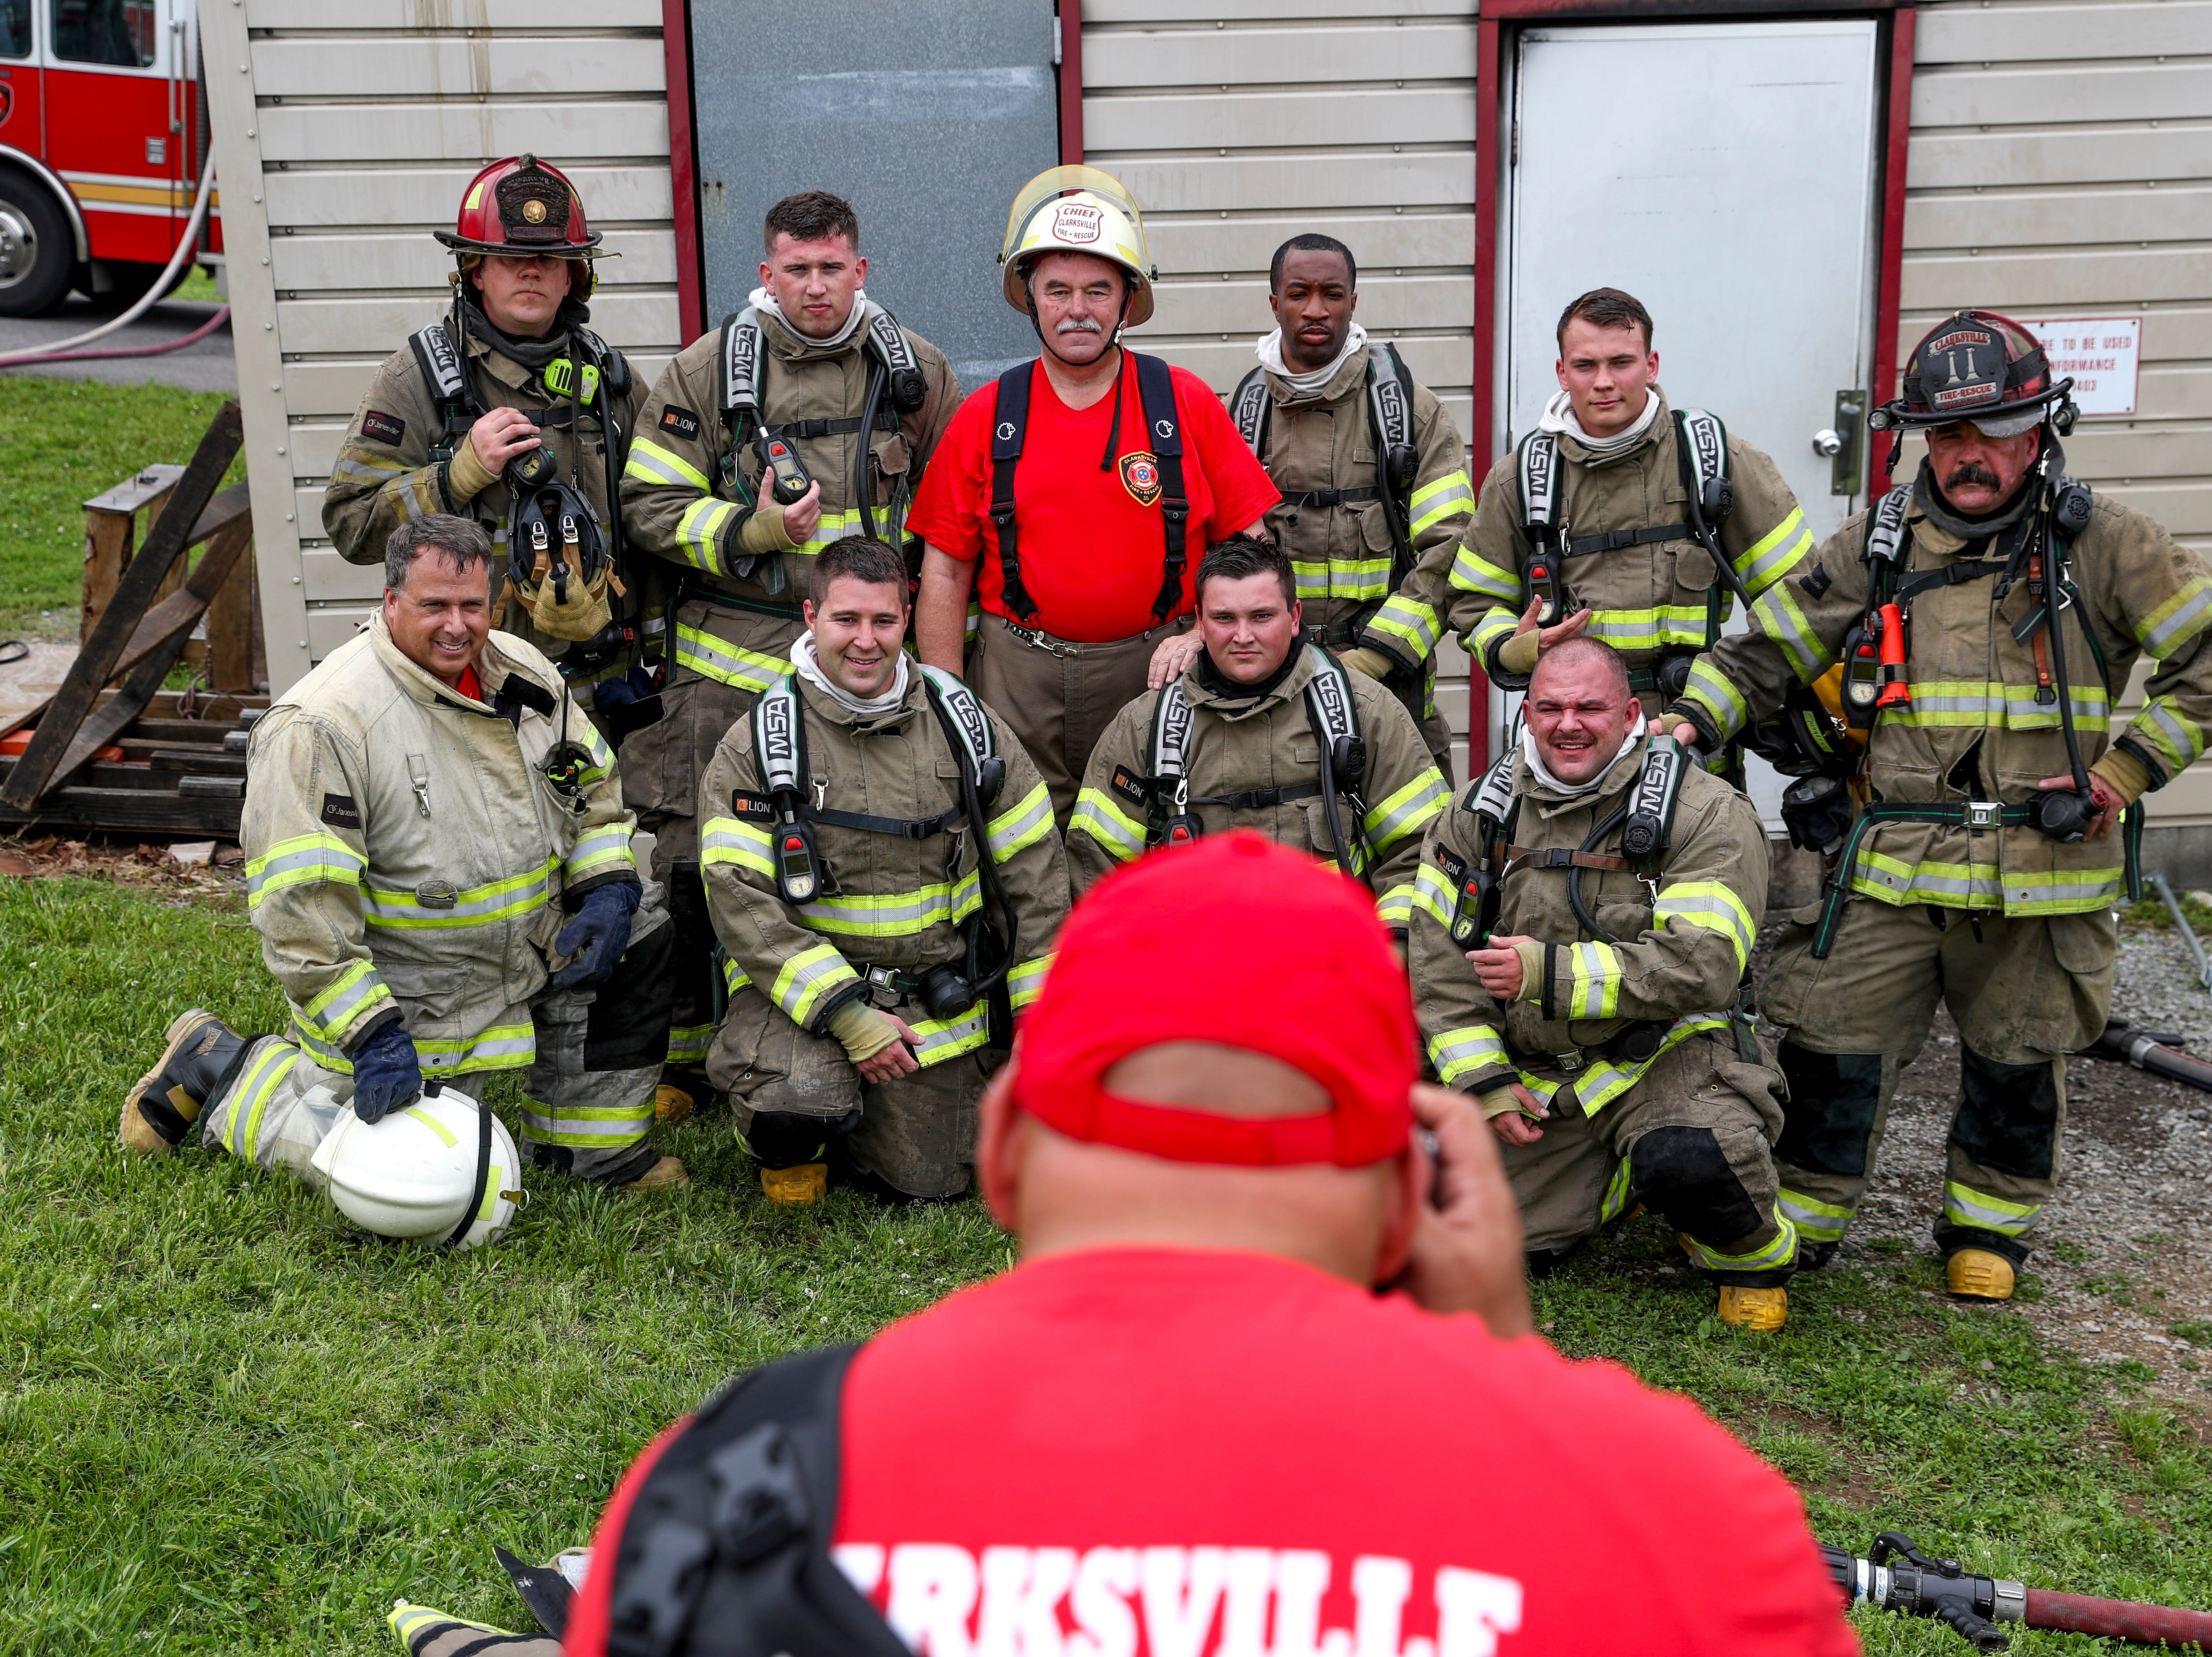 Captain Michael Rios takes a photo of the whole group going through a live fire drill at Clarksville Fire Rescue in Clarksville, Tenn., on Friday, May 10, 2019.